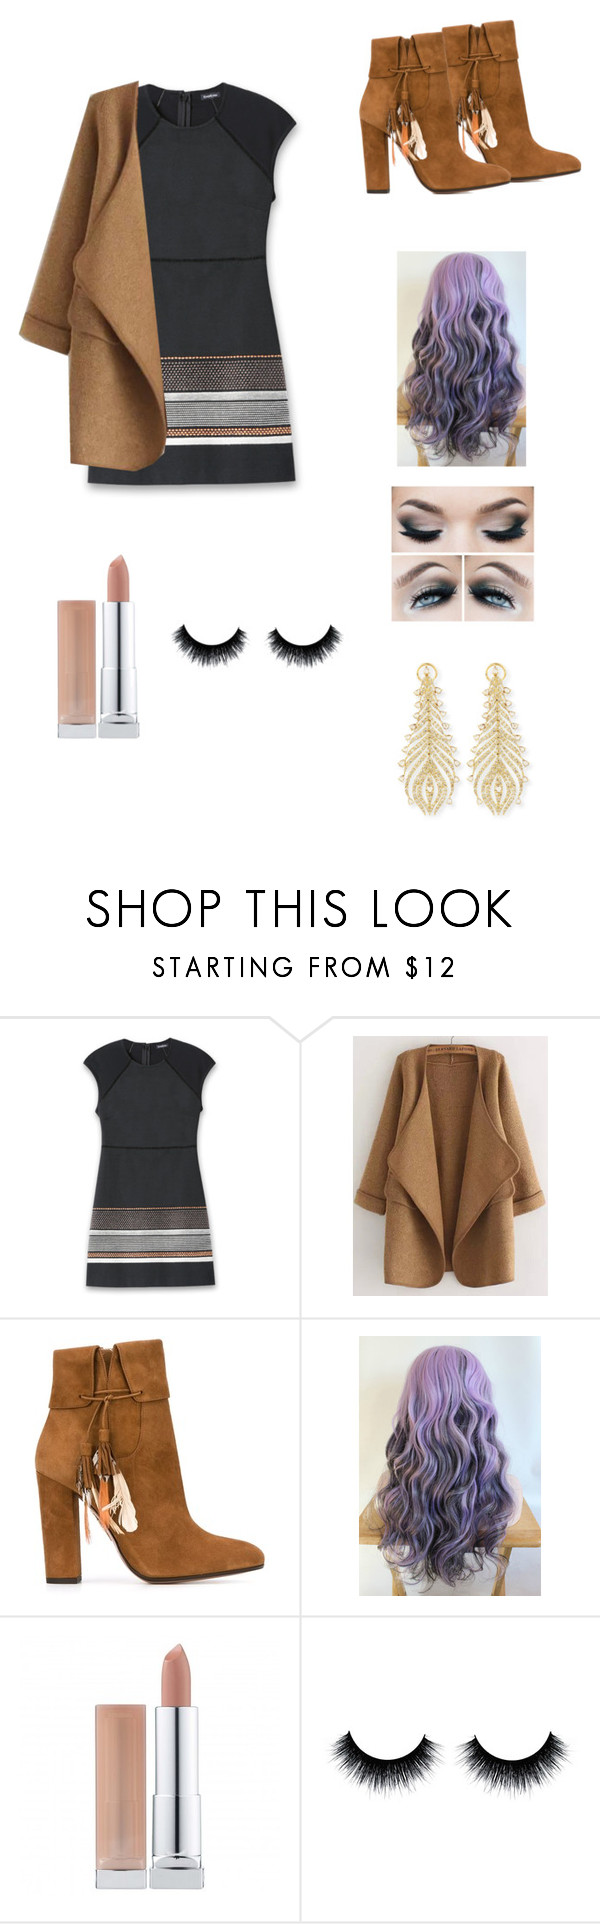 """""""Purple Hair and Earth Tones"""" by petite-chic ❤ liked on Polyvore featuring Bebe, WithChic, Aquazzura and Sutra"""